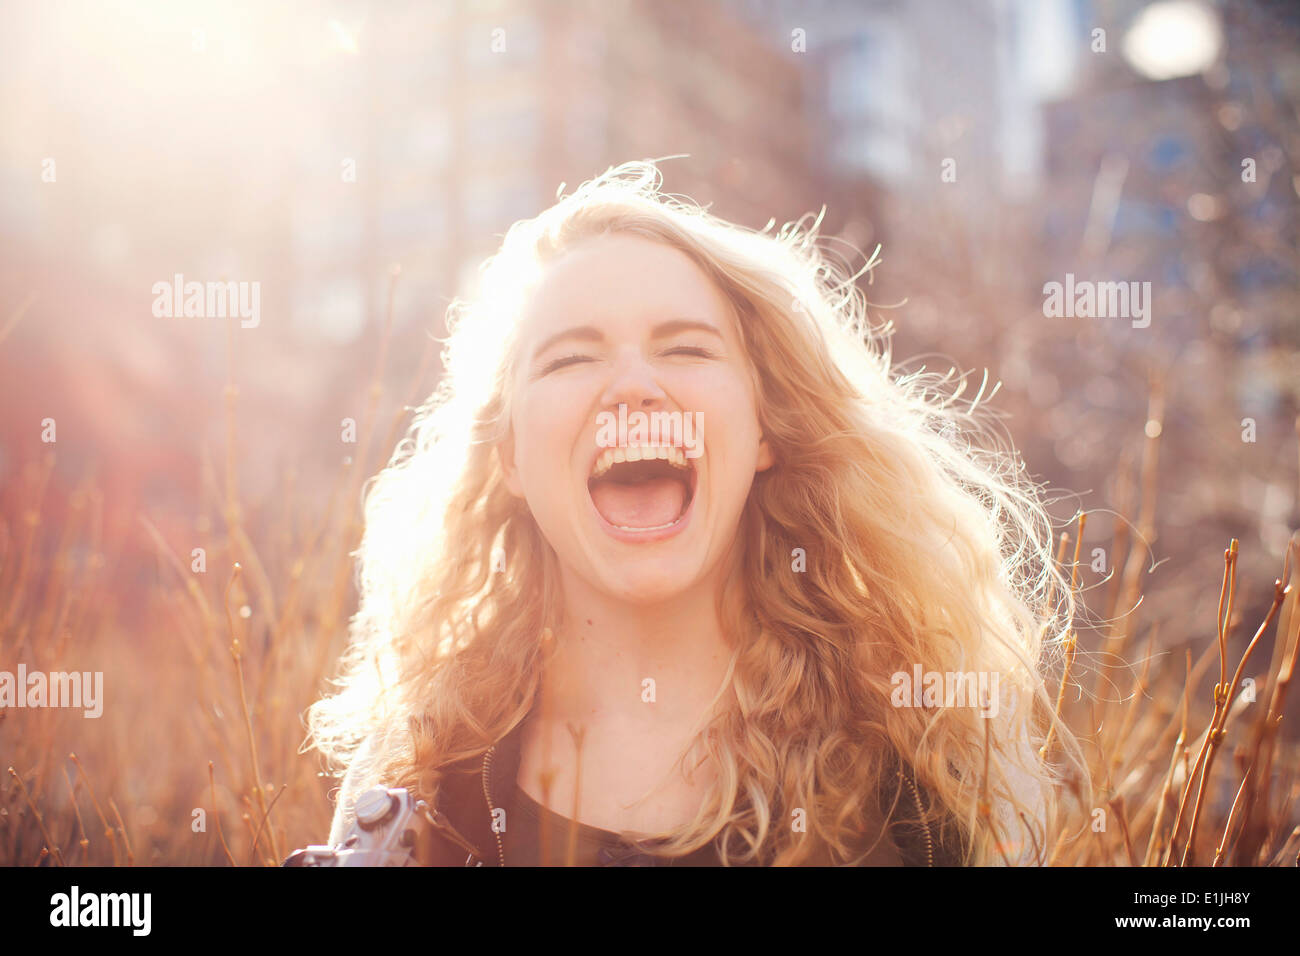 Young woman in long grass with open mouth - Stock Image